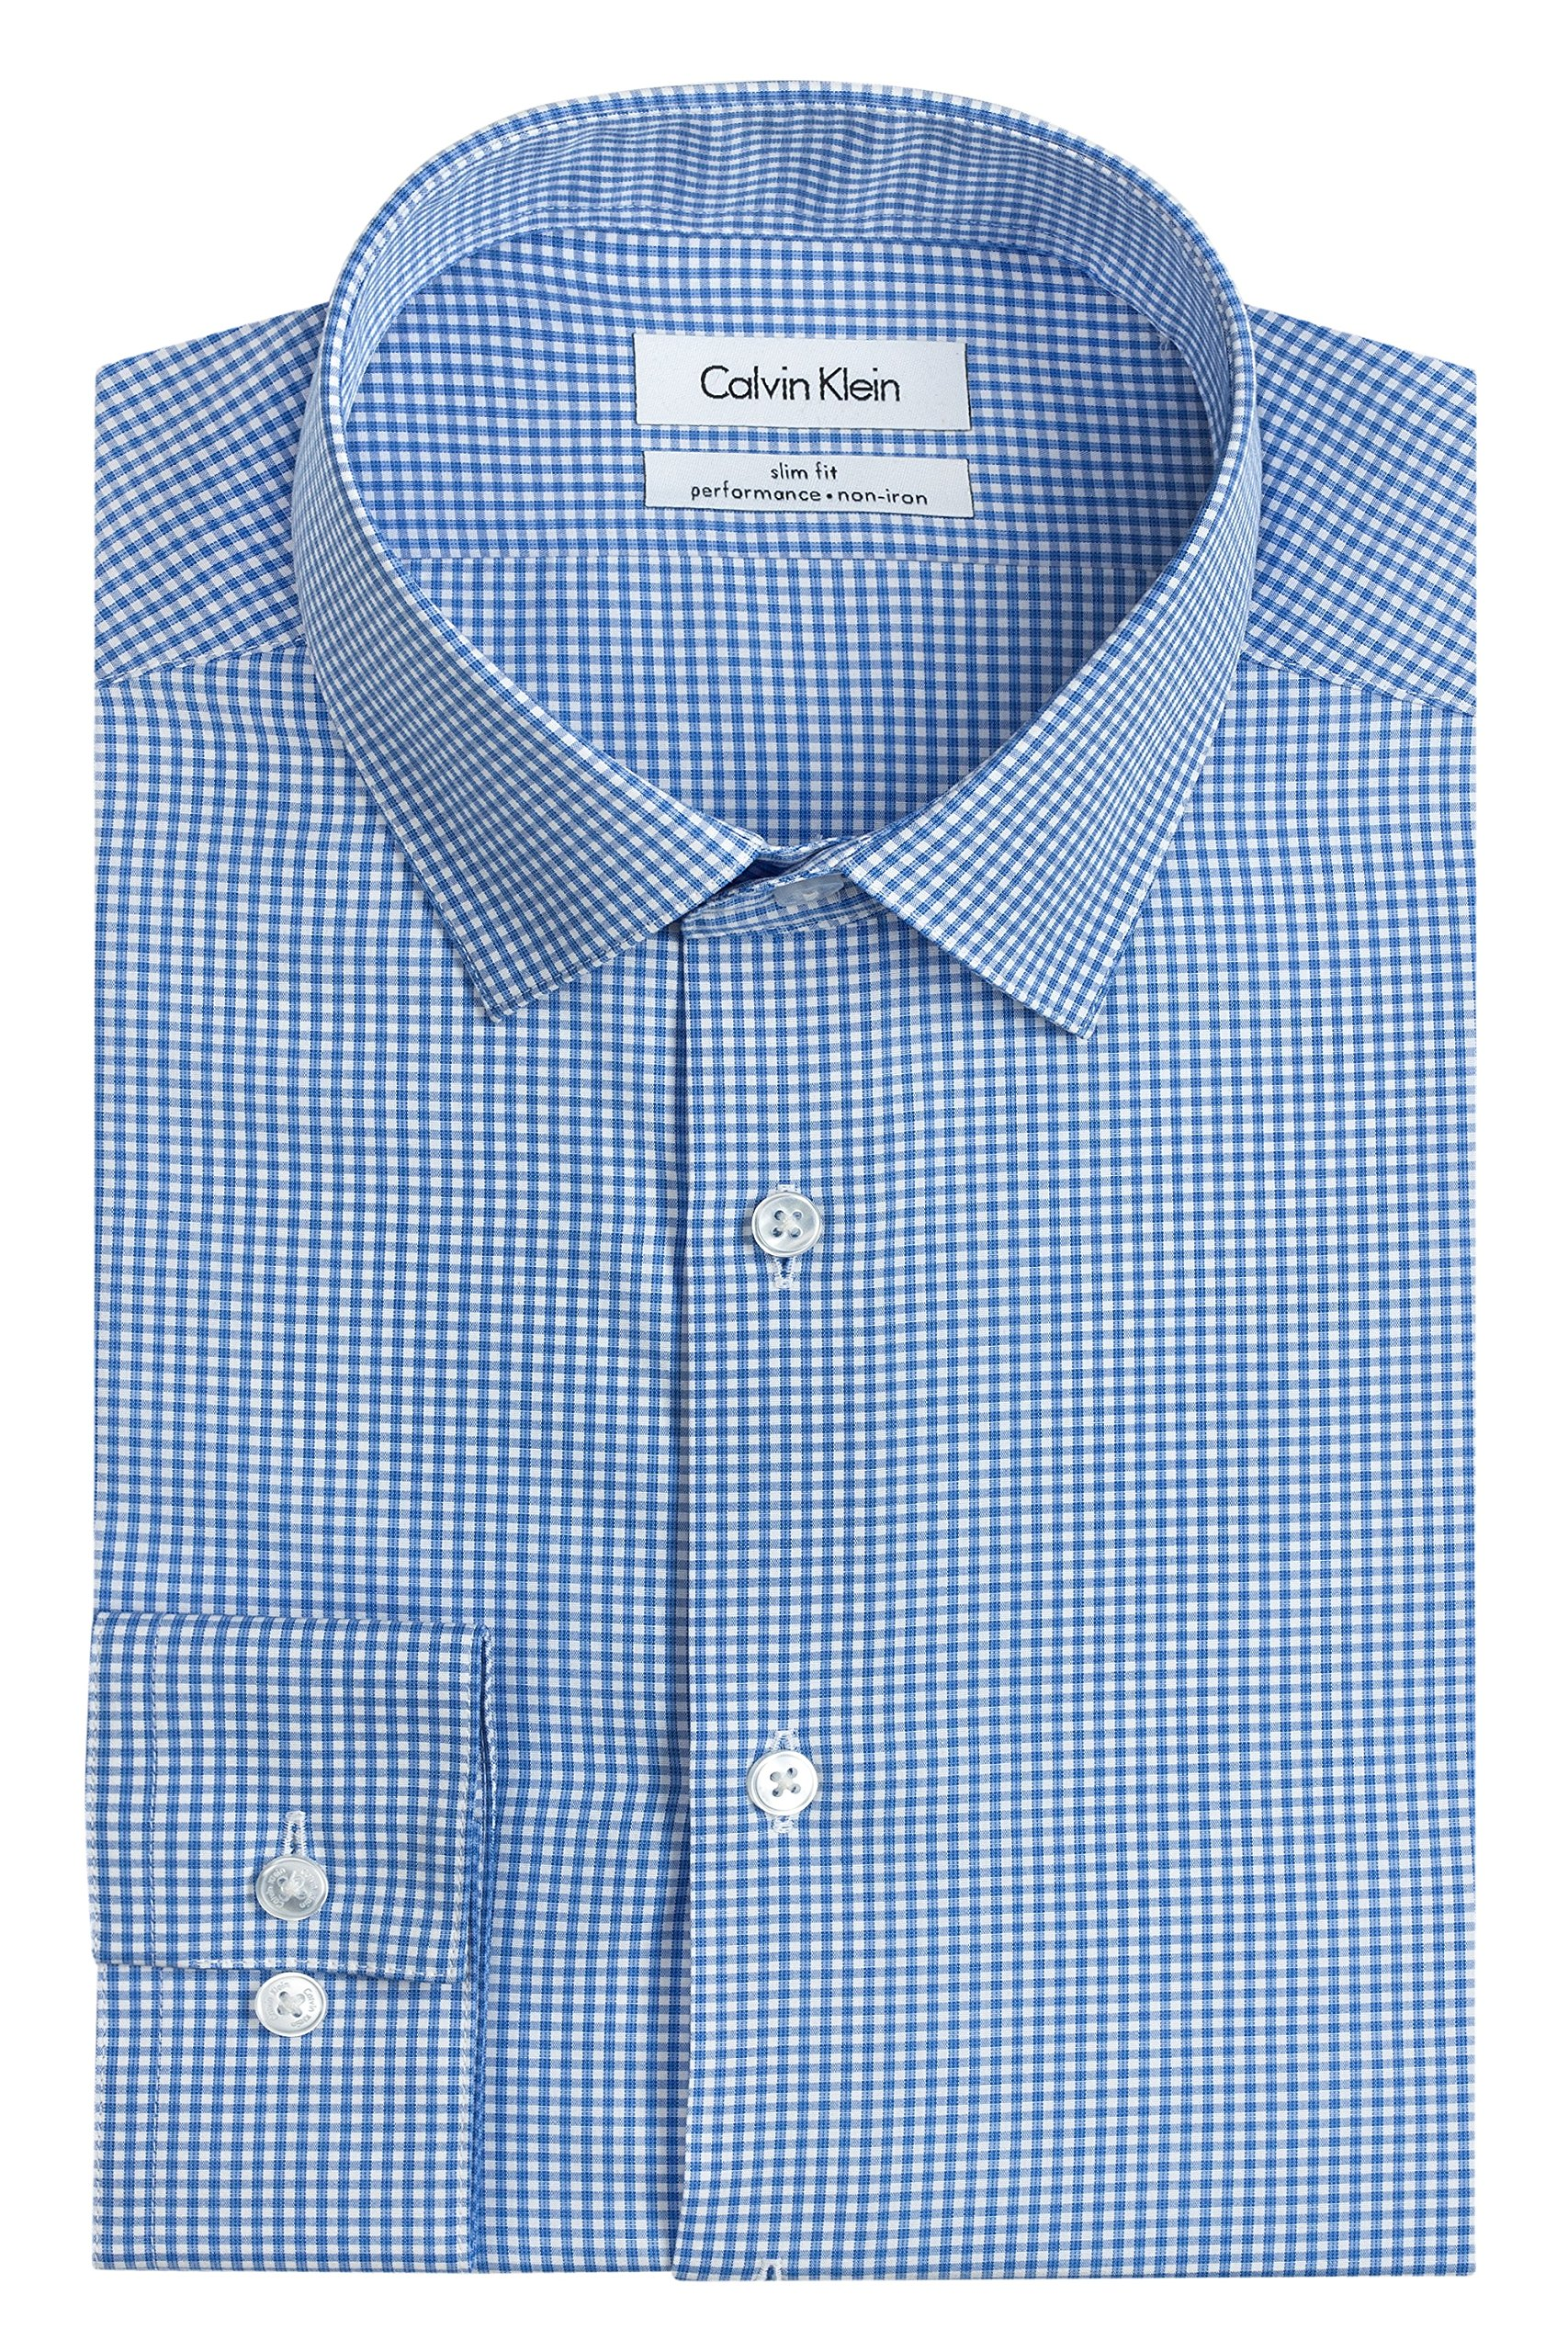 Calvin Klein Mens Dress Shirts Non Iron Slim Fit Gingham Spread Collar by Calvin Klein